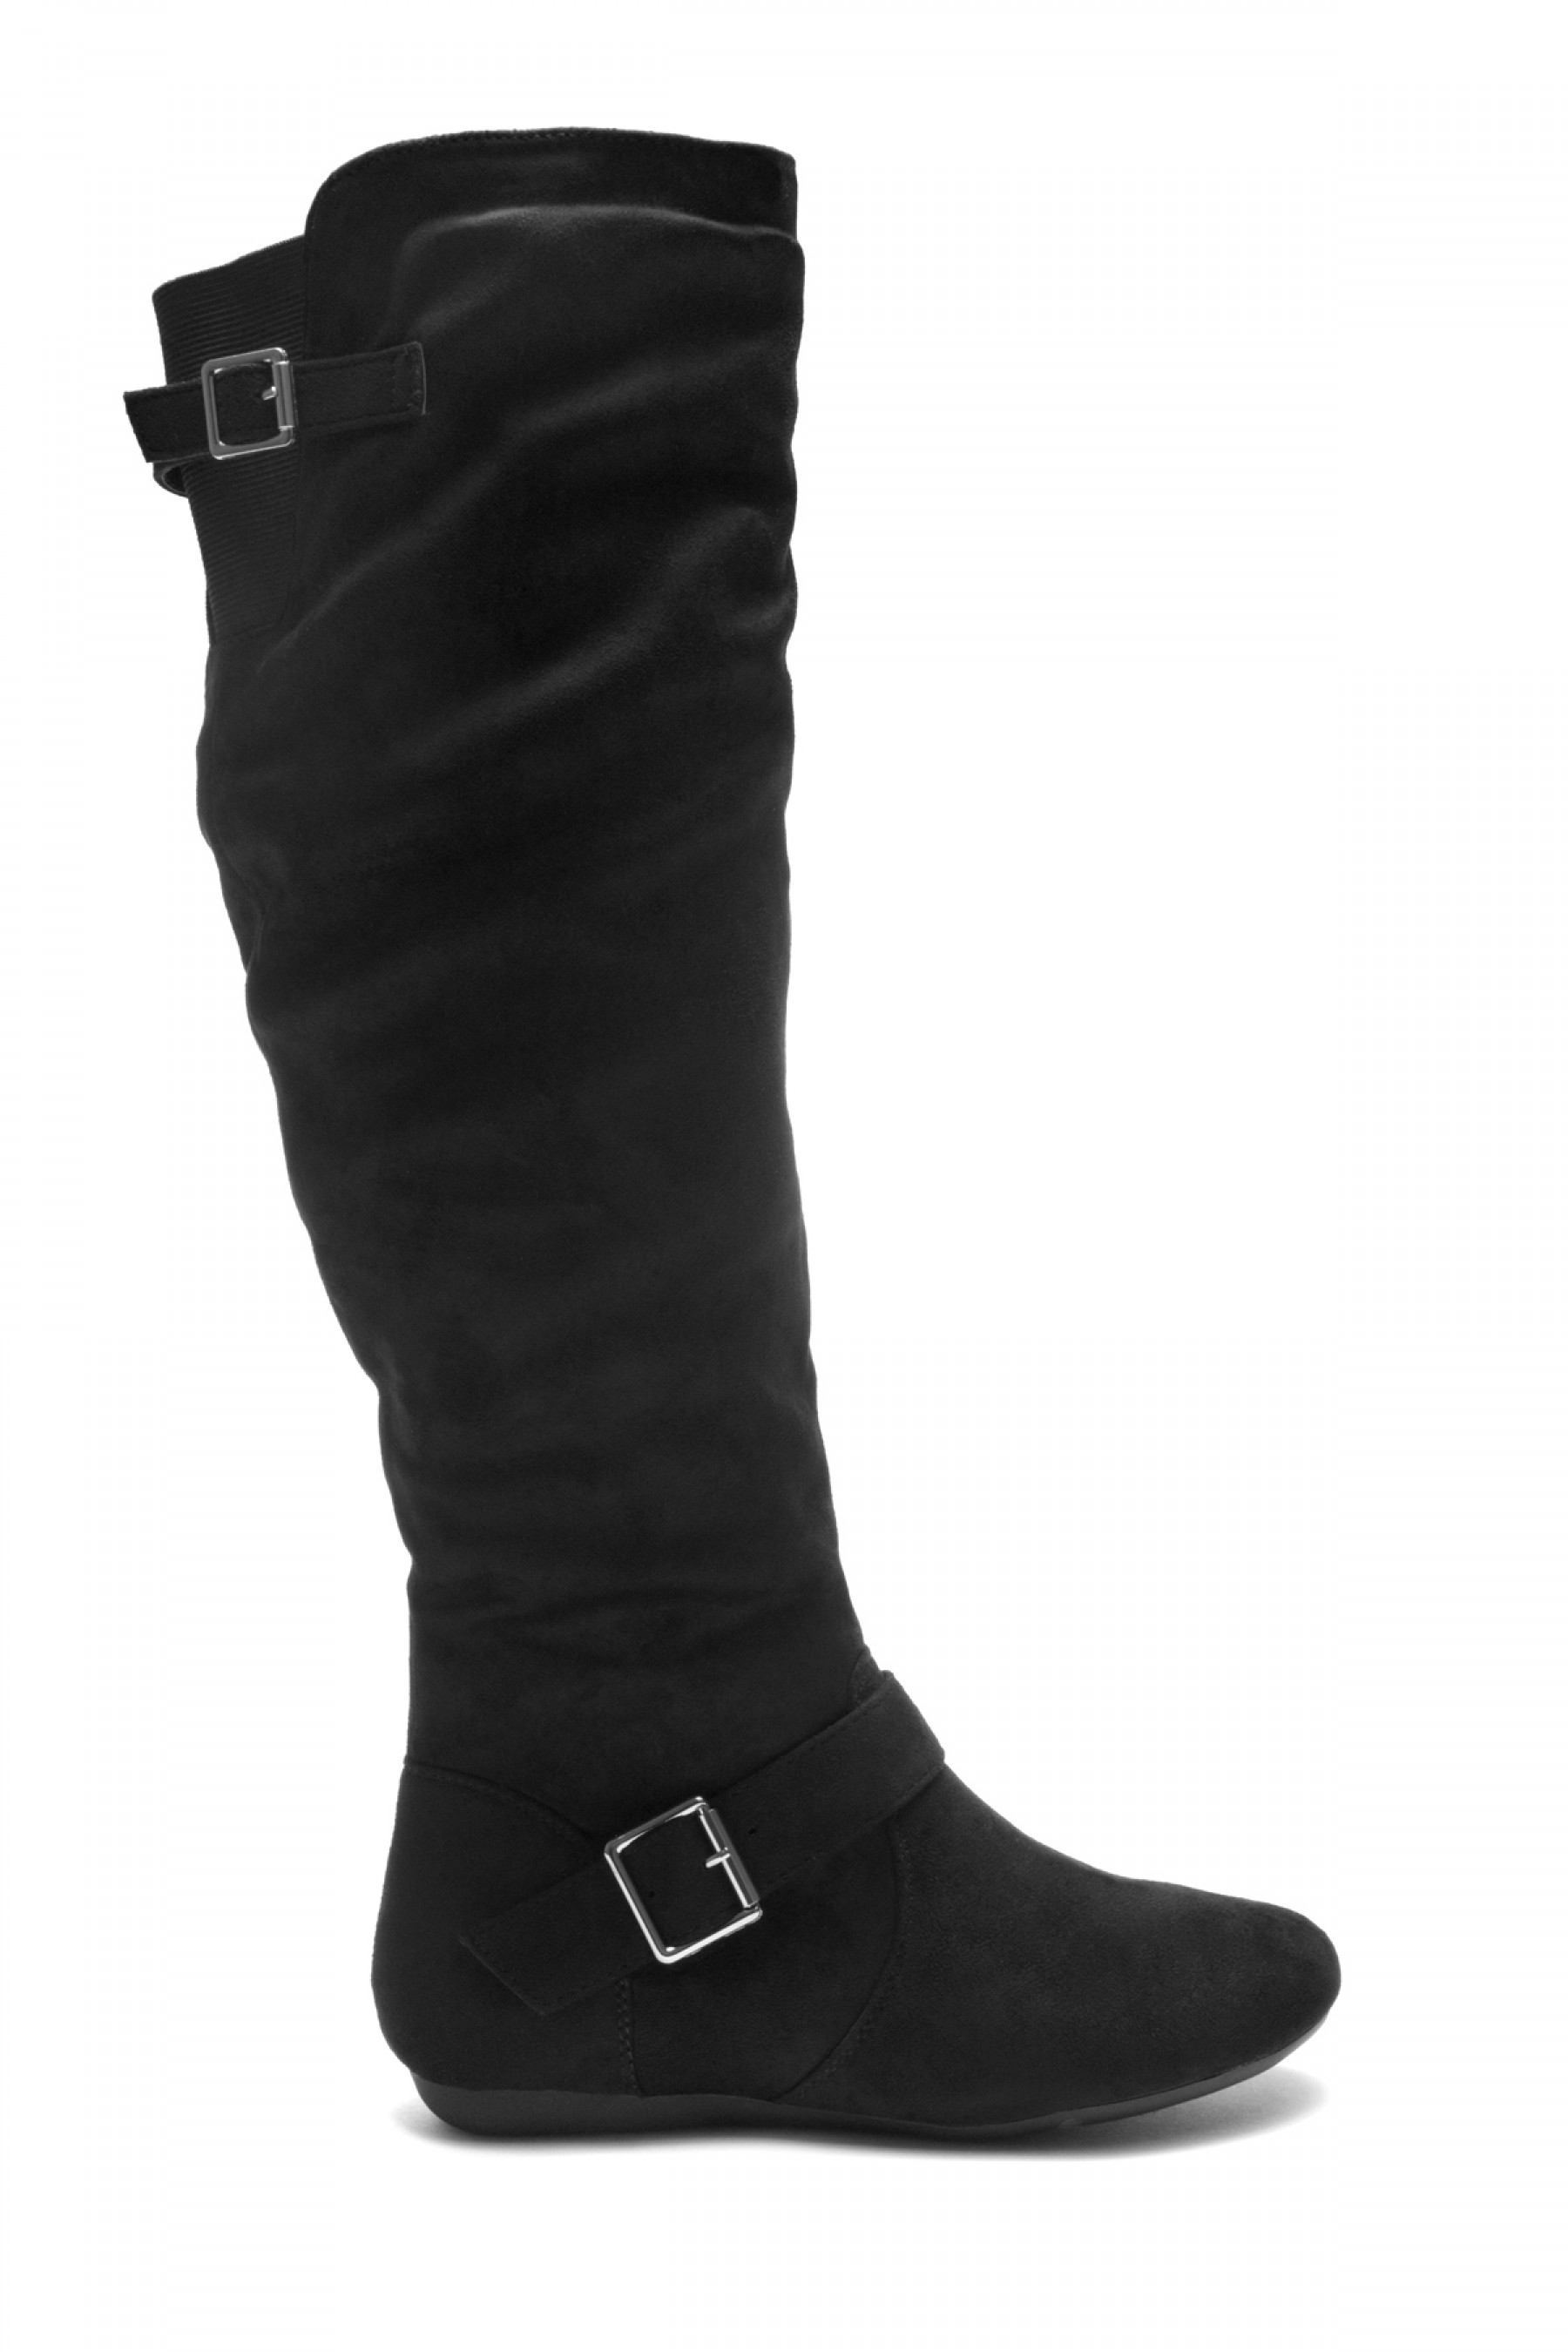 HerStyle Ieshia Thigh High Suede round toe flat boots